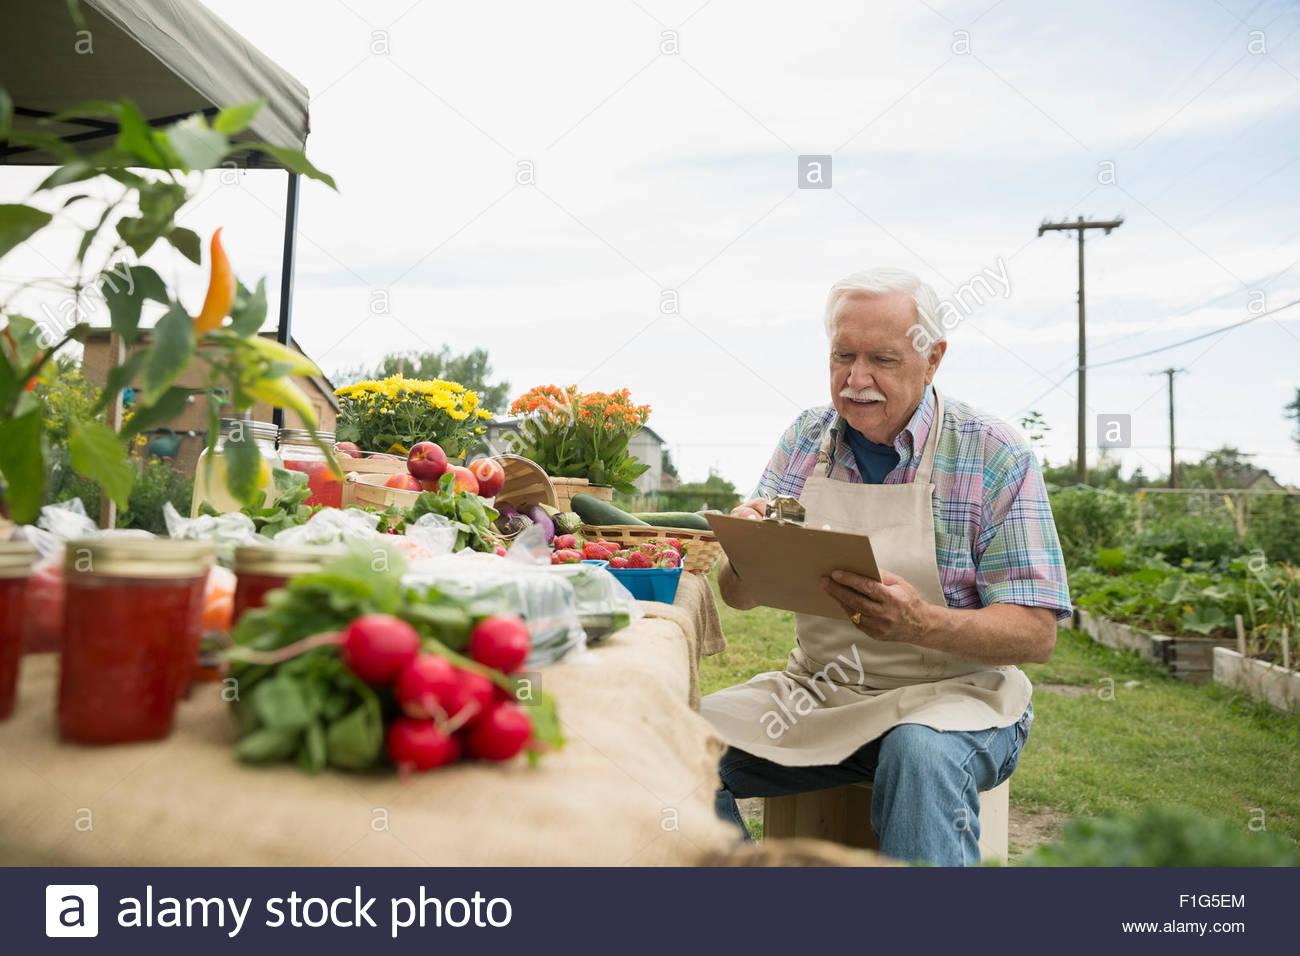 Farmer with clipboard checking inventory farmers market stall - Stock Image